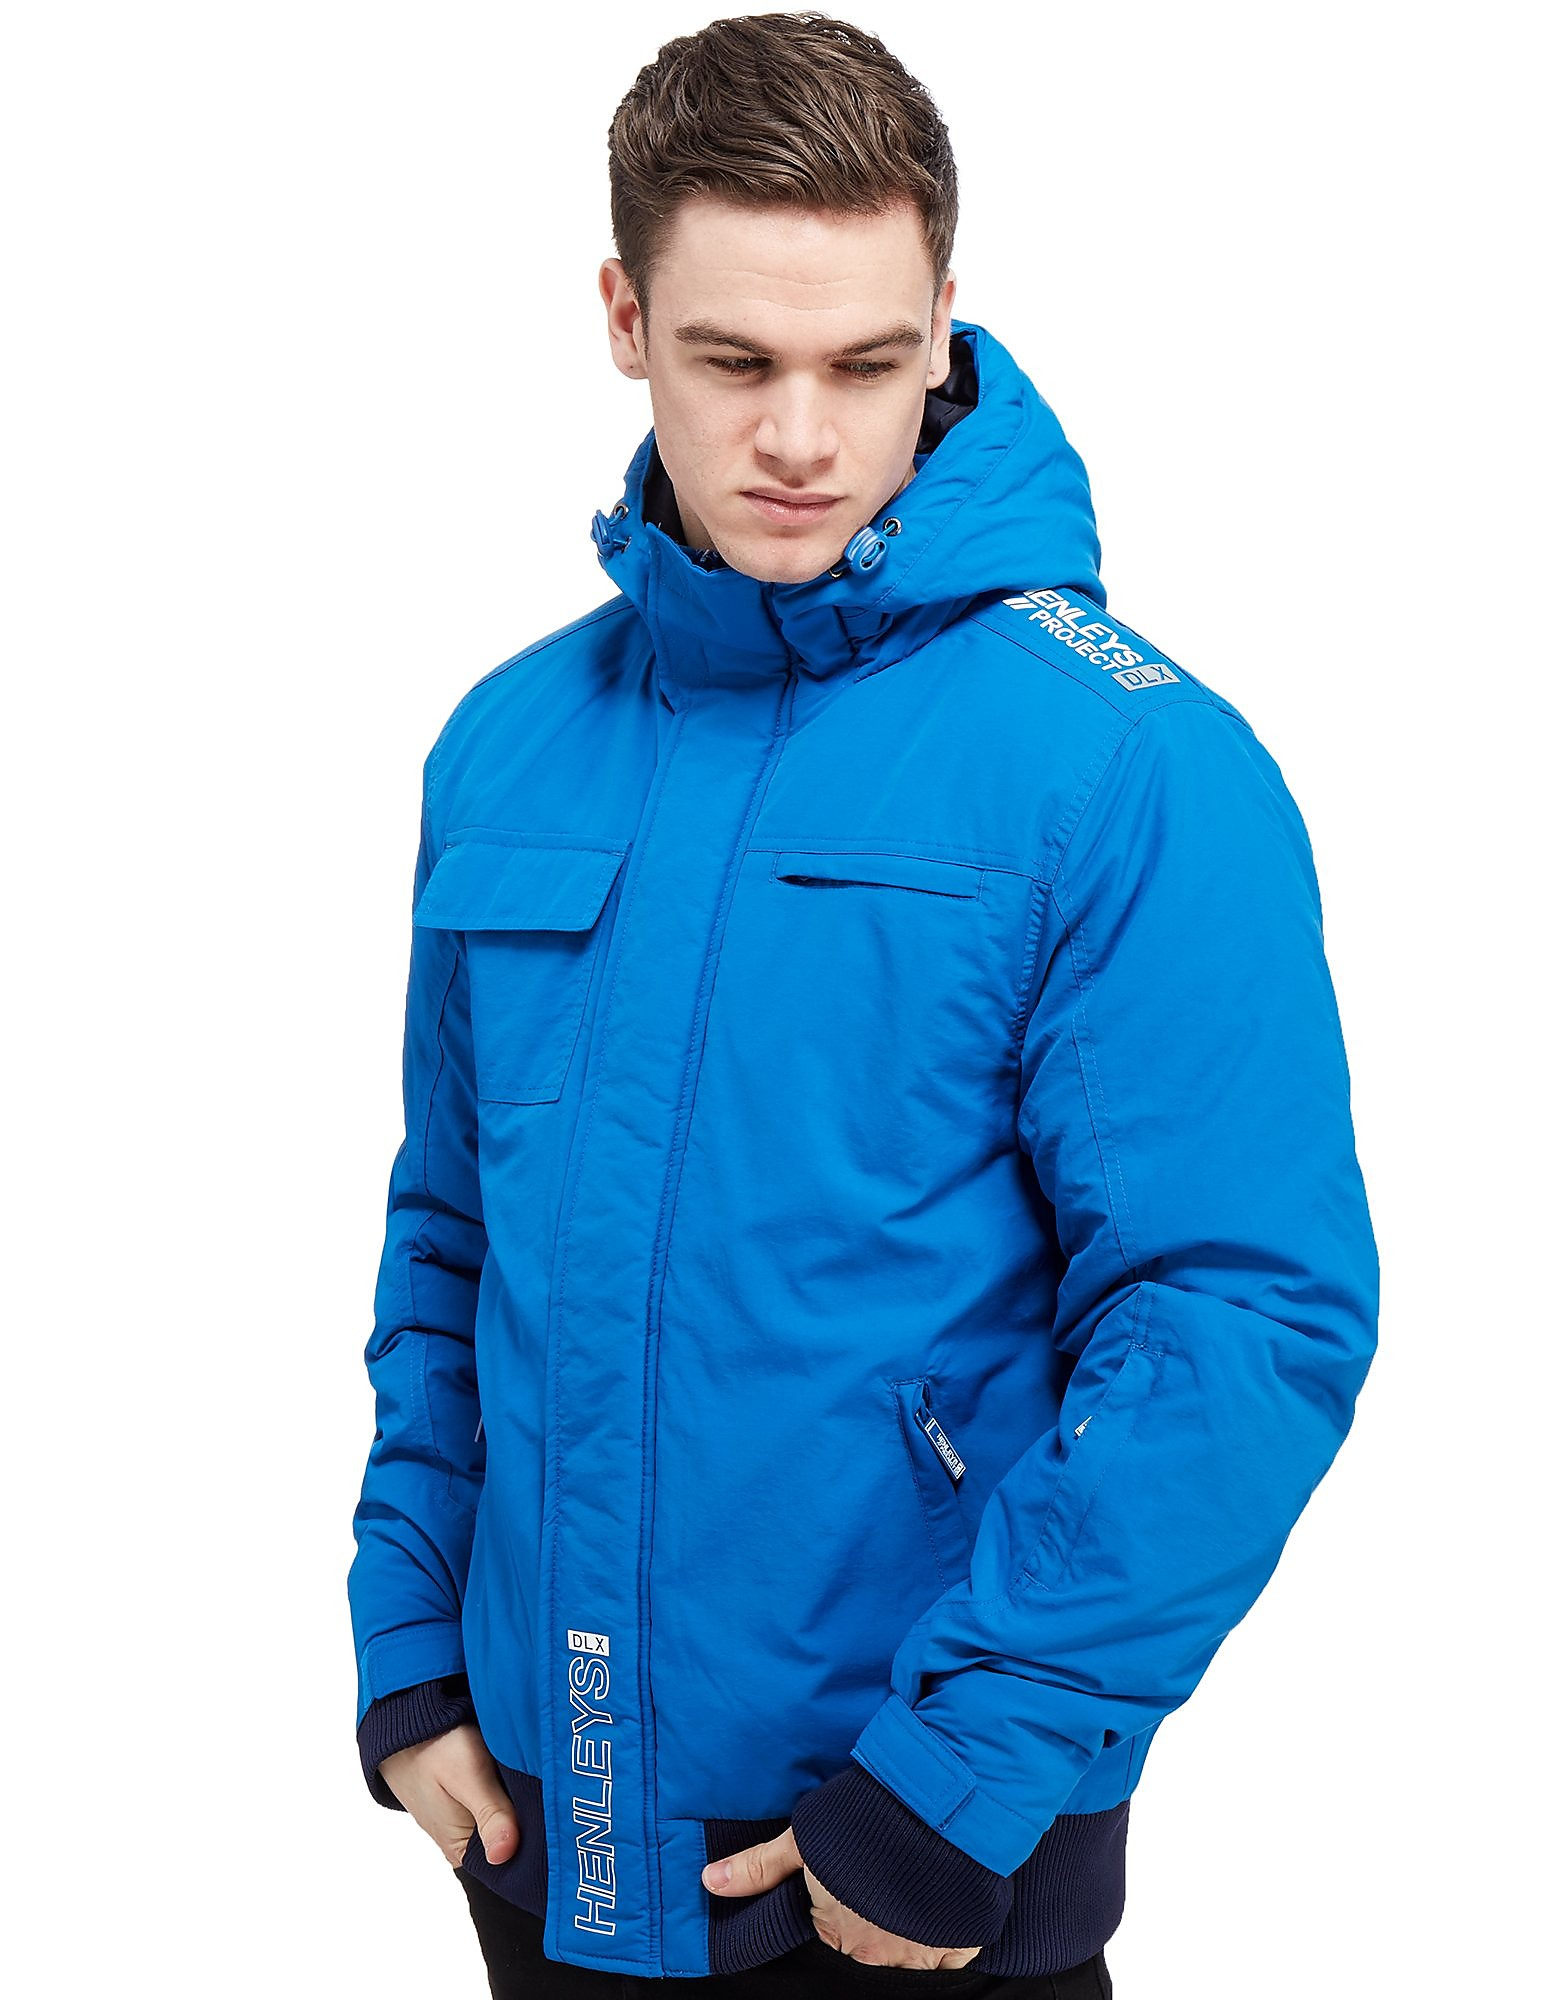 Henleys Tuffnel Jacket